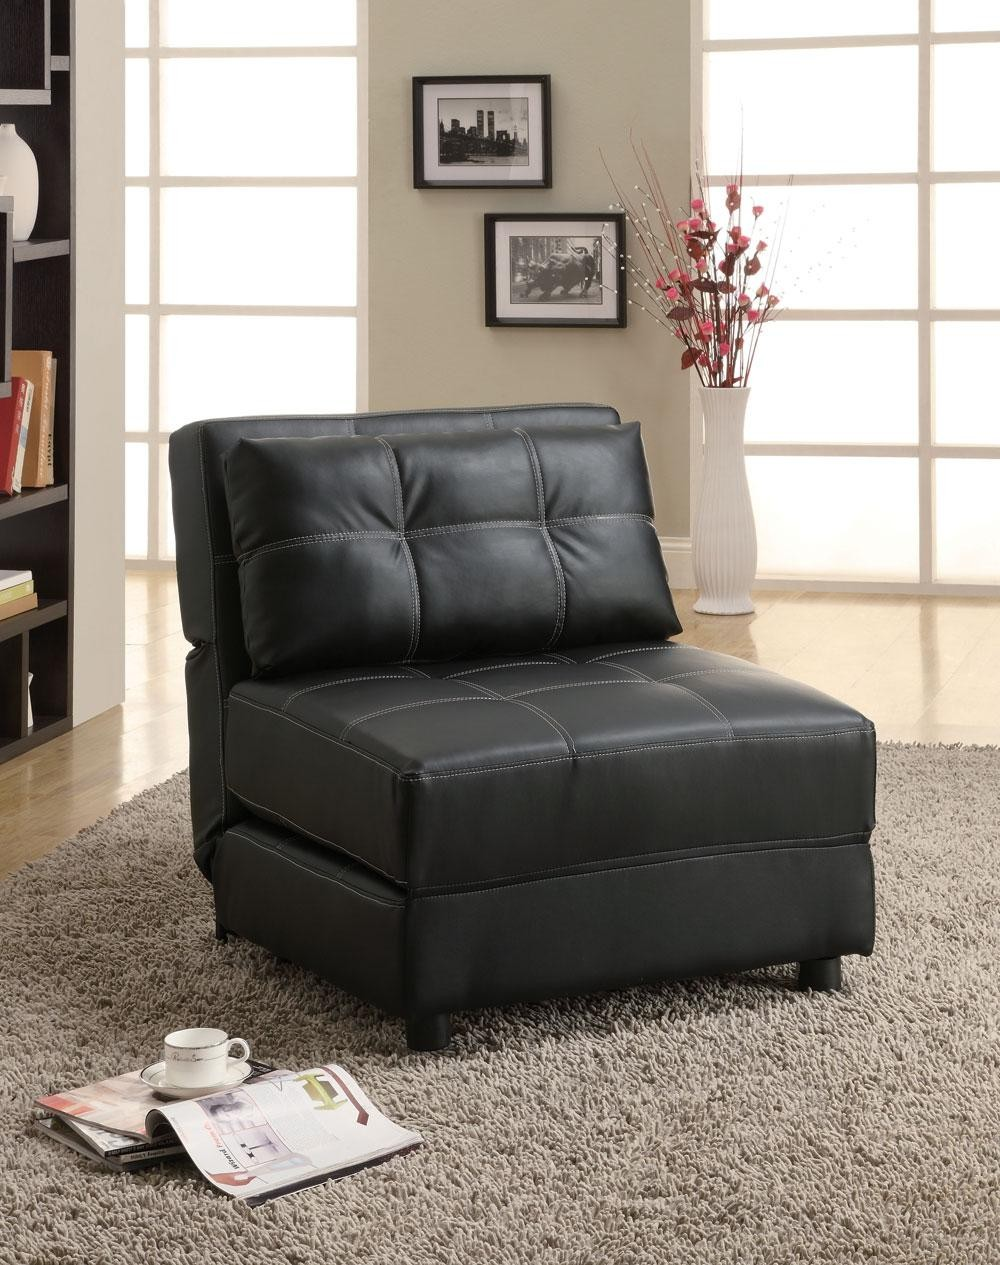 Lounge Chair Sofa Bed 300173 From Coaster 300173